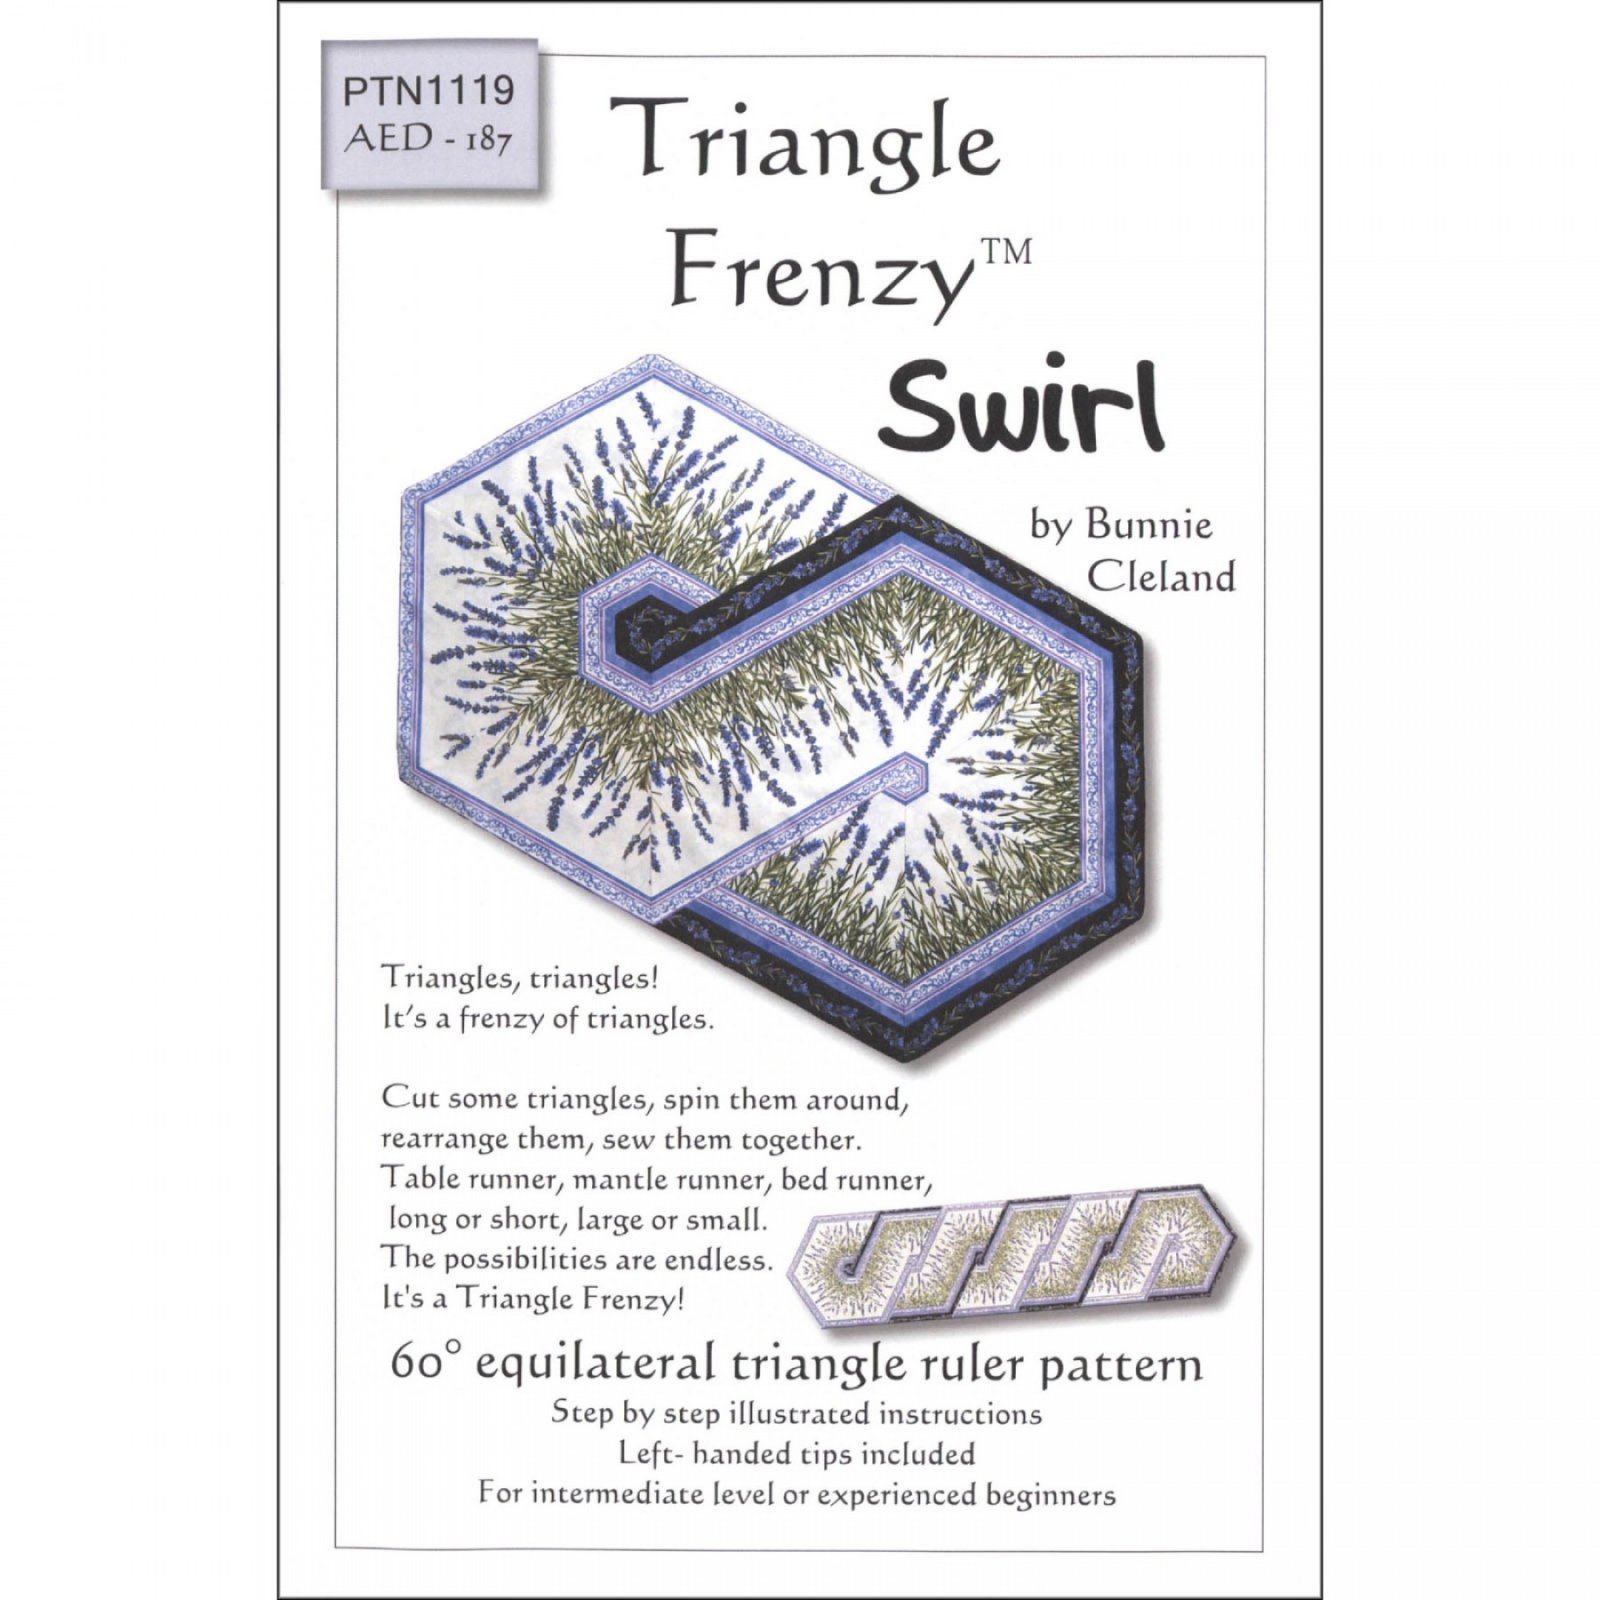 AED187 Triangle Frenzy Swirl